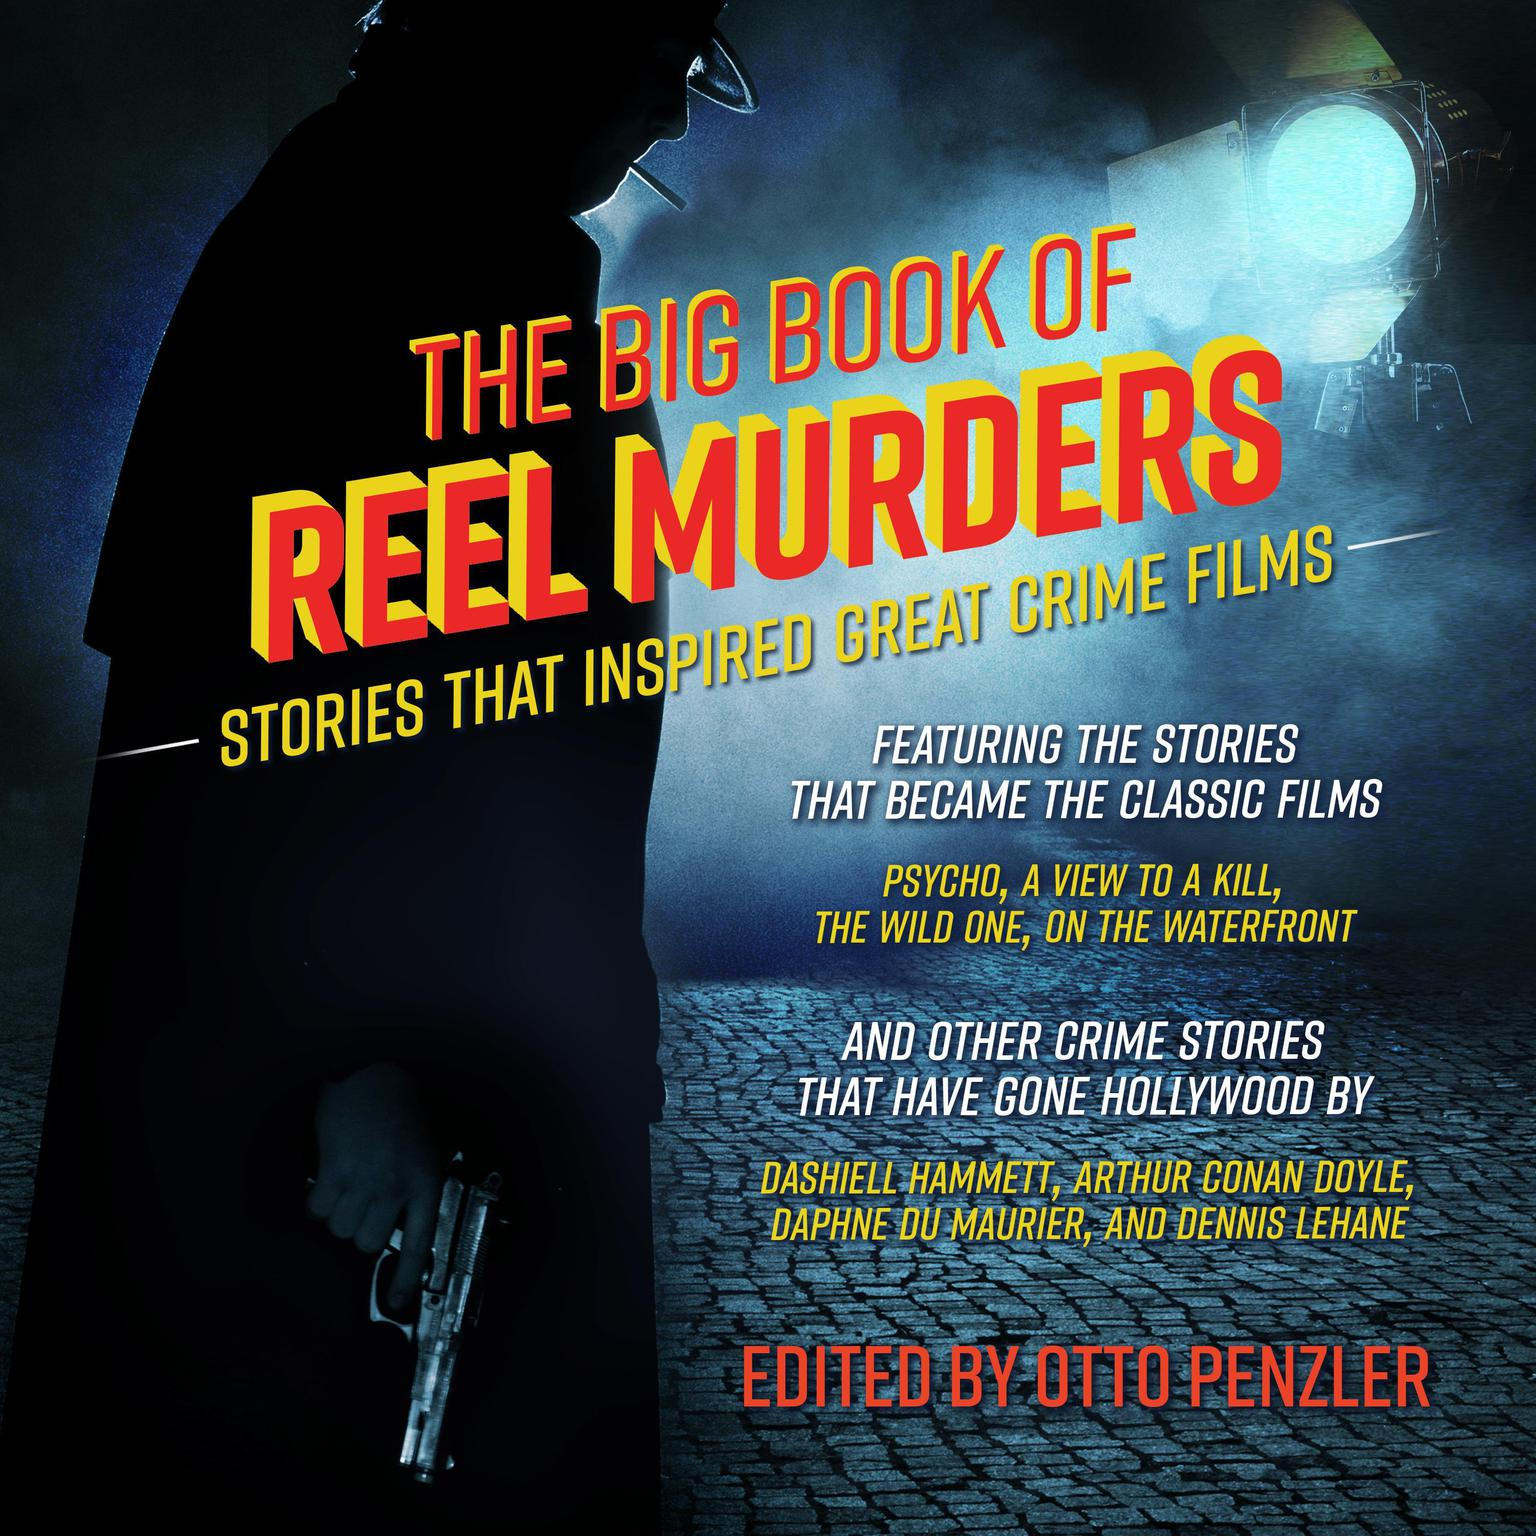 Printable The Big Book of Reel Murders: Stories that Inspired Great Crime Films Audiobook Cover Art